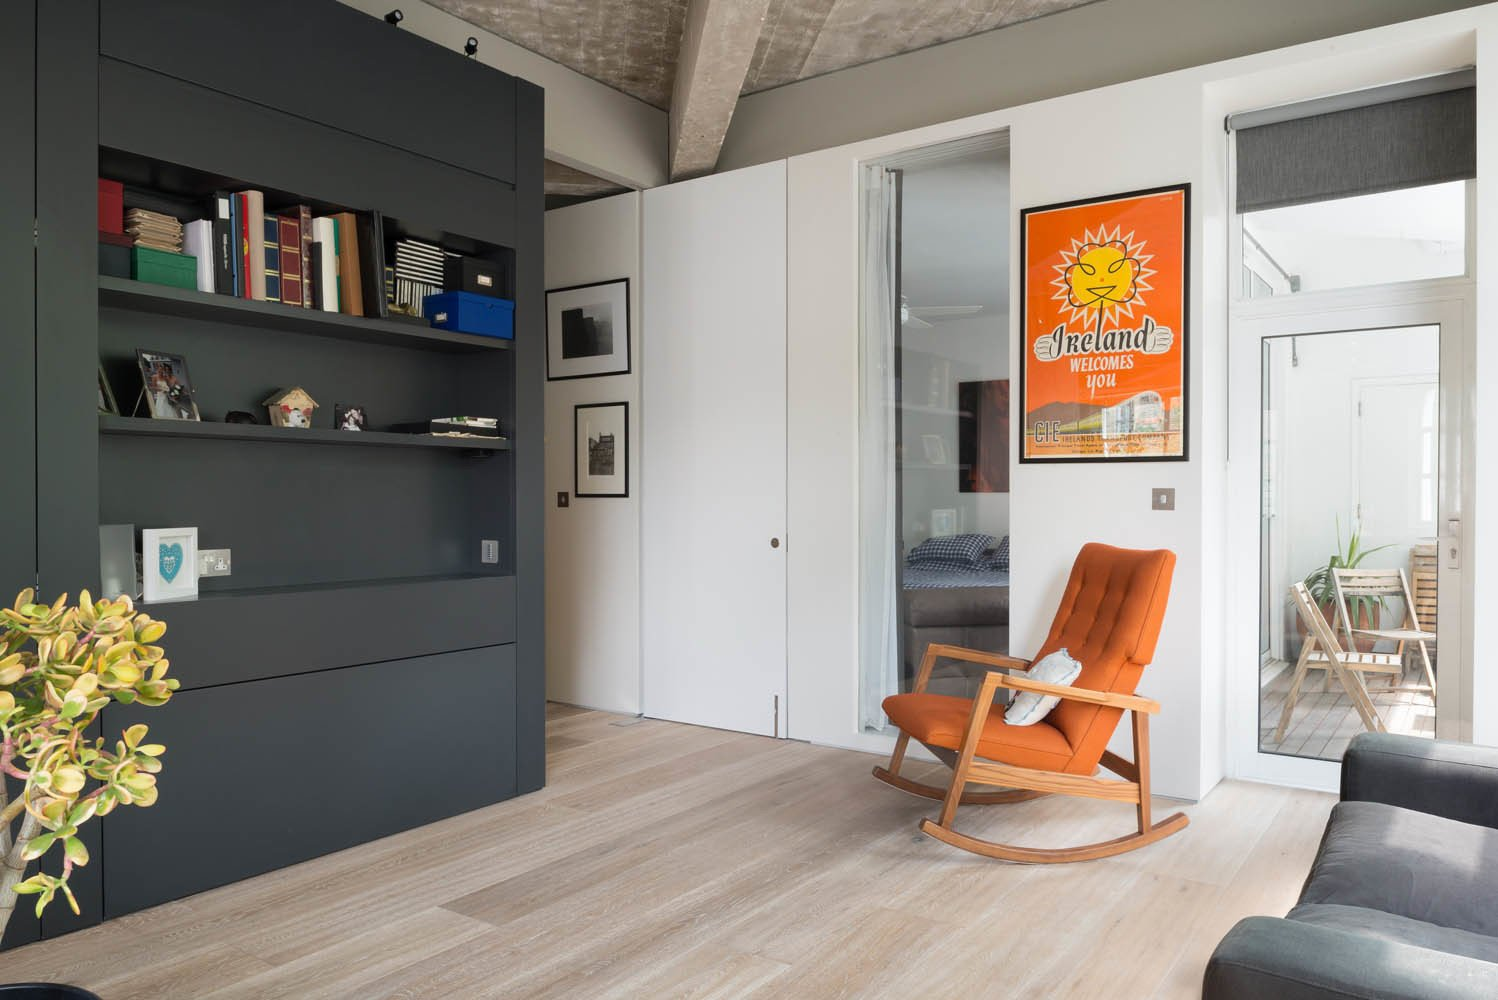 The architects carved out a small sitting area outside a bedroom. The partitions are either painted plasterboard, lacquered medium-density fiberboard (MDF), or veneered MDF. Photo by Jim Stephenson.  Photo 6 of 8 in Renovation Opens Up a London Apartment